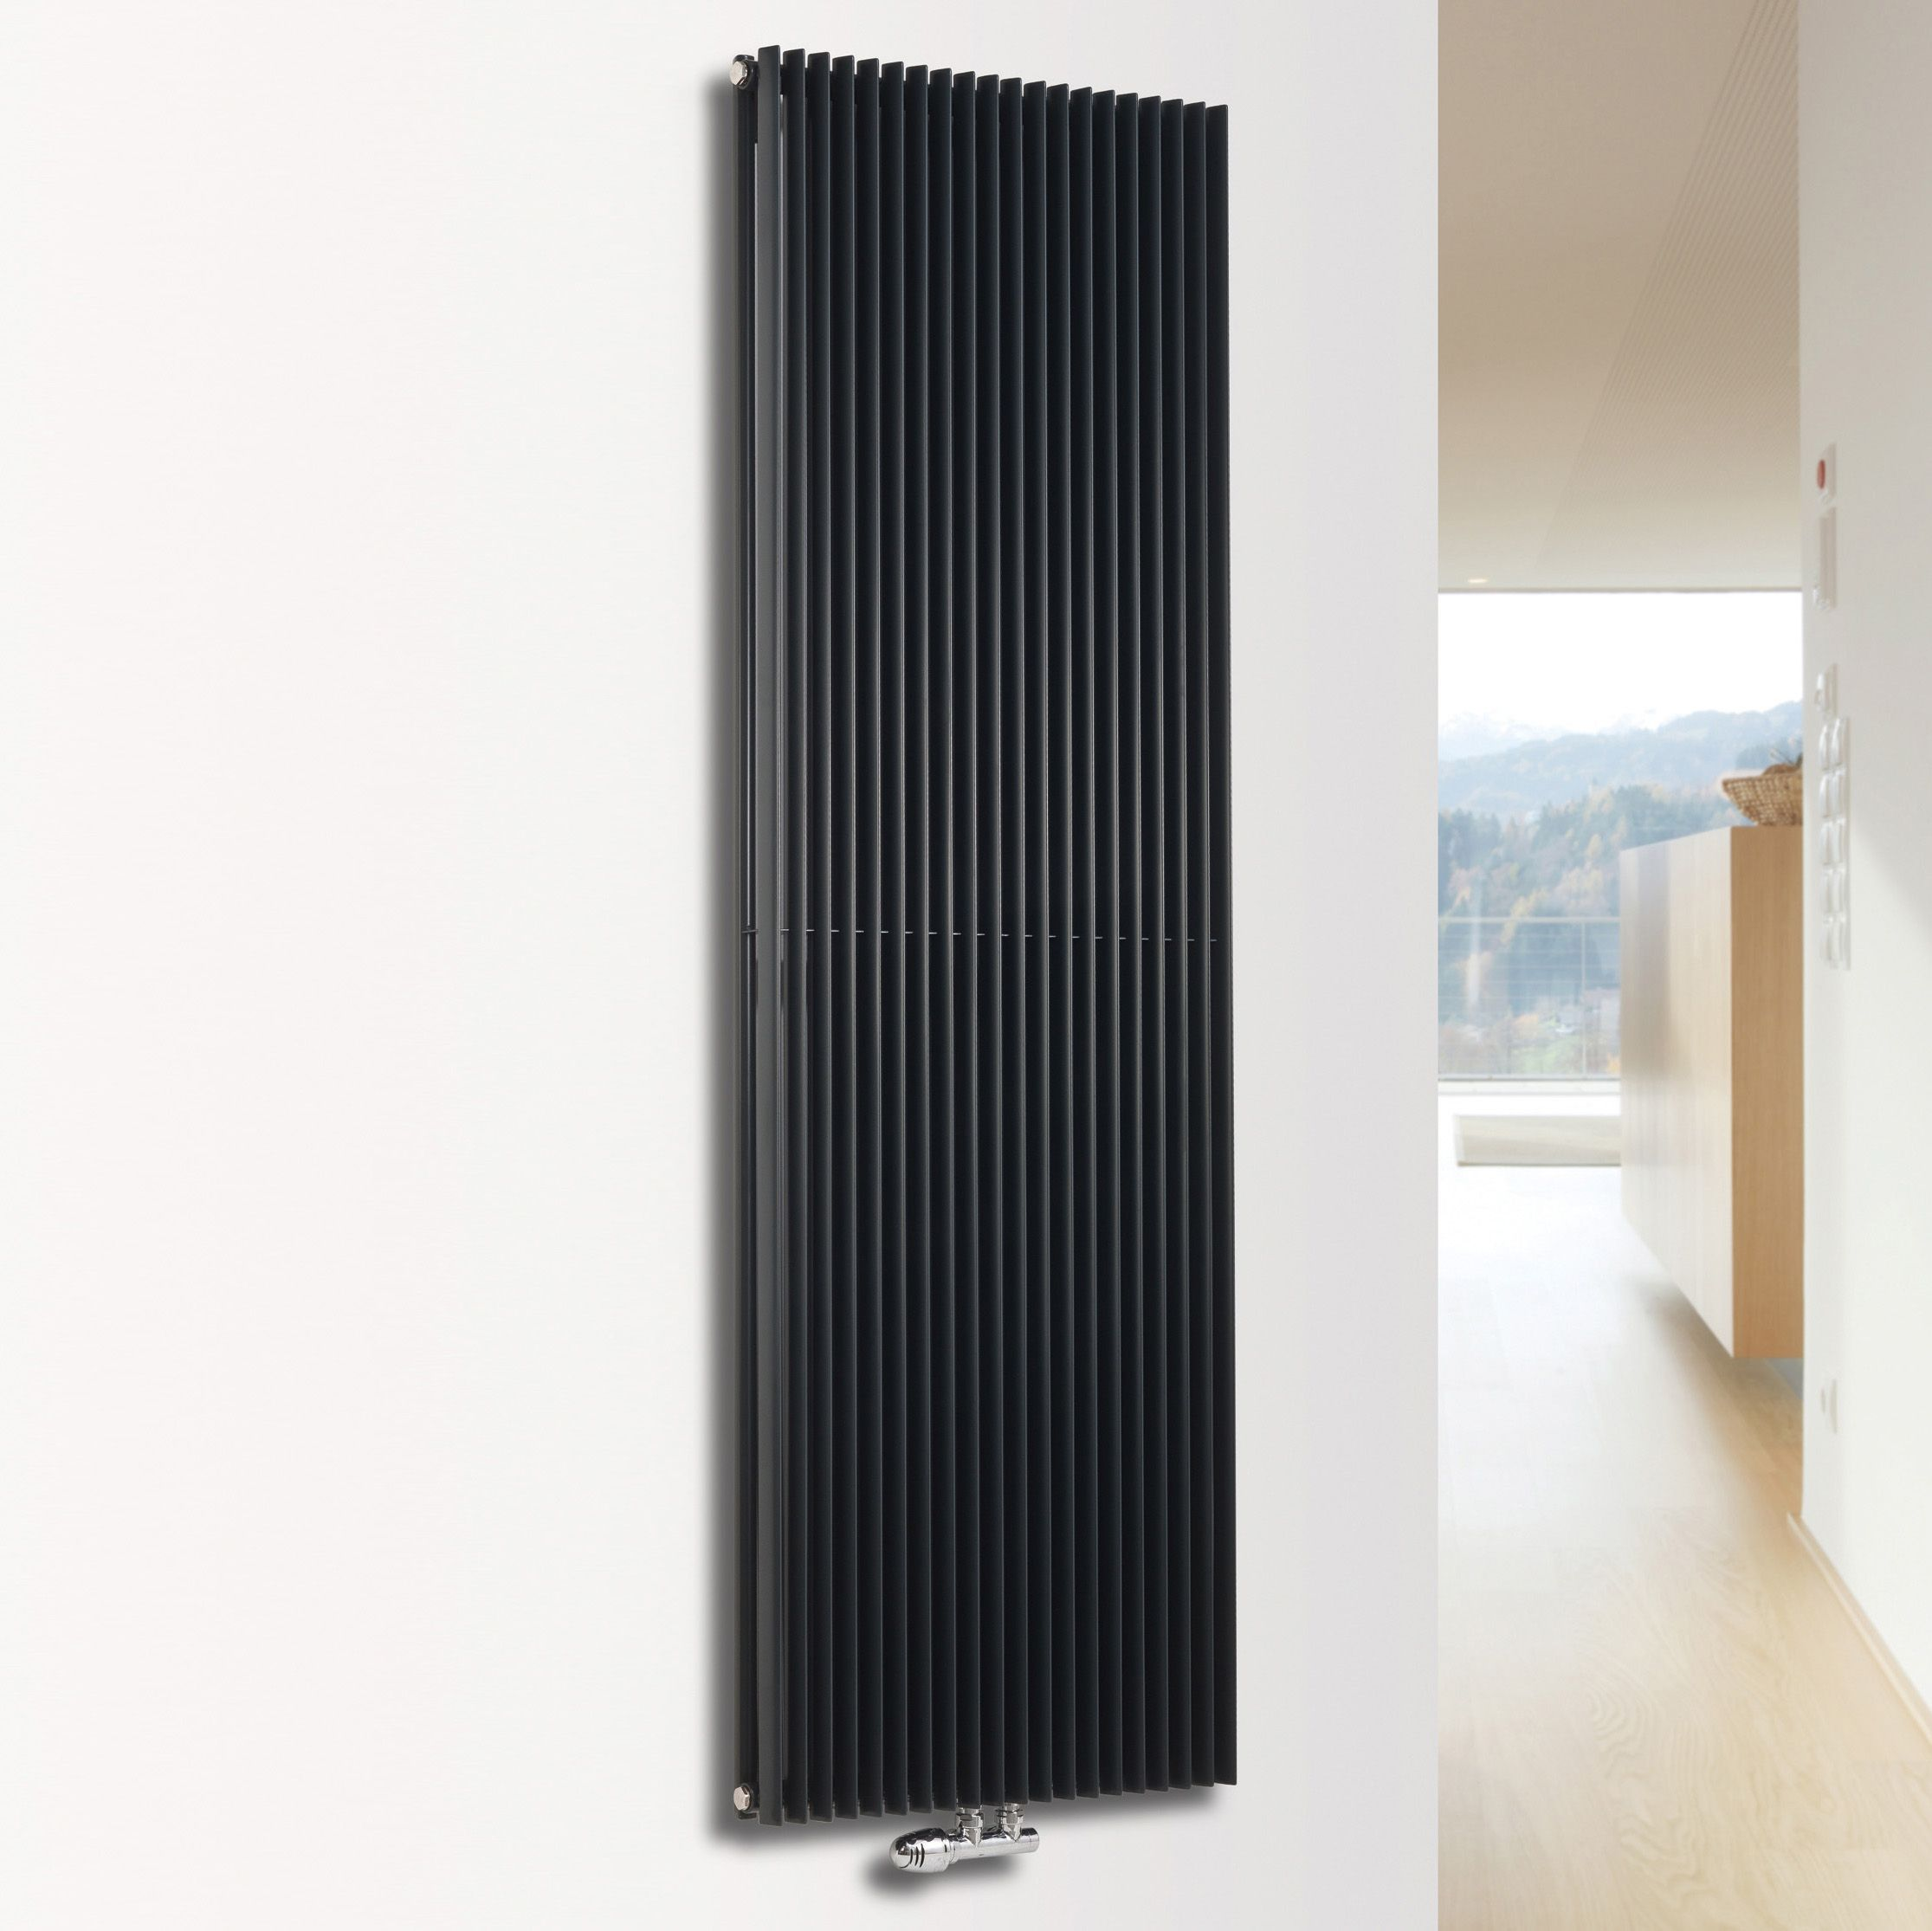 Ximax Triton Duplex Vertical Radiator Anthracite (H)1800 mm